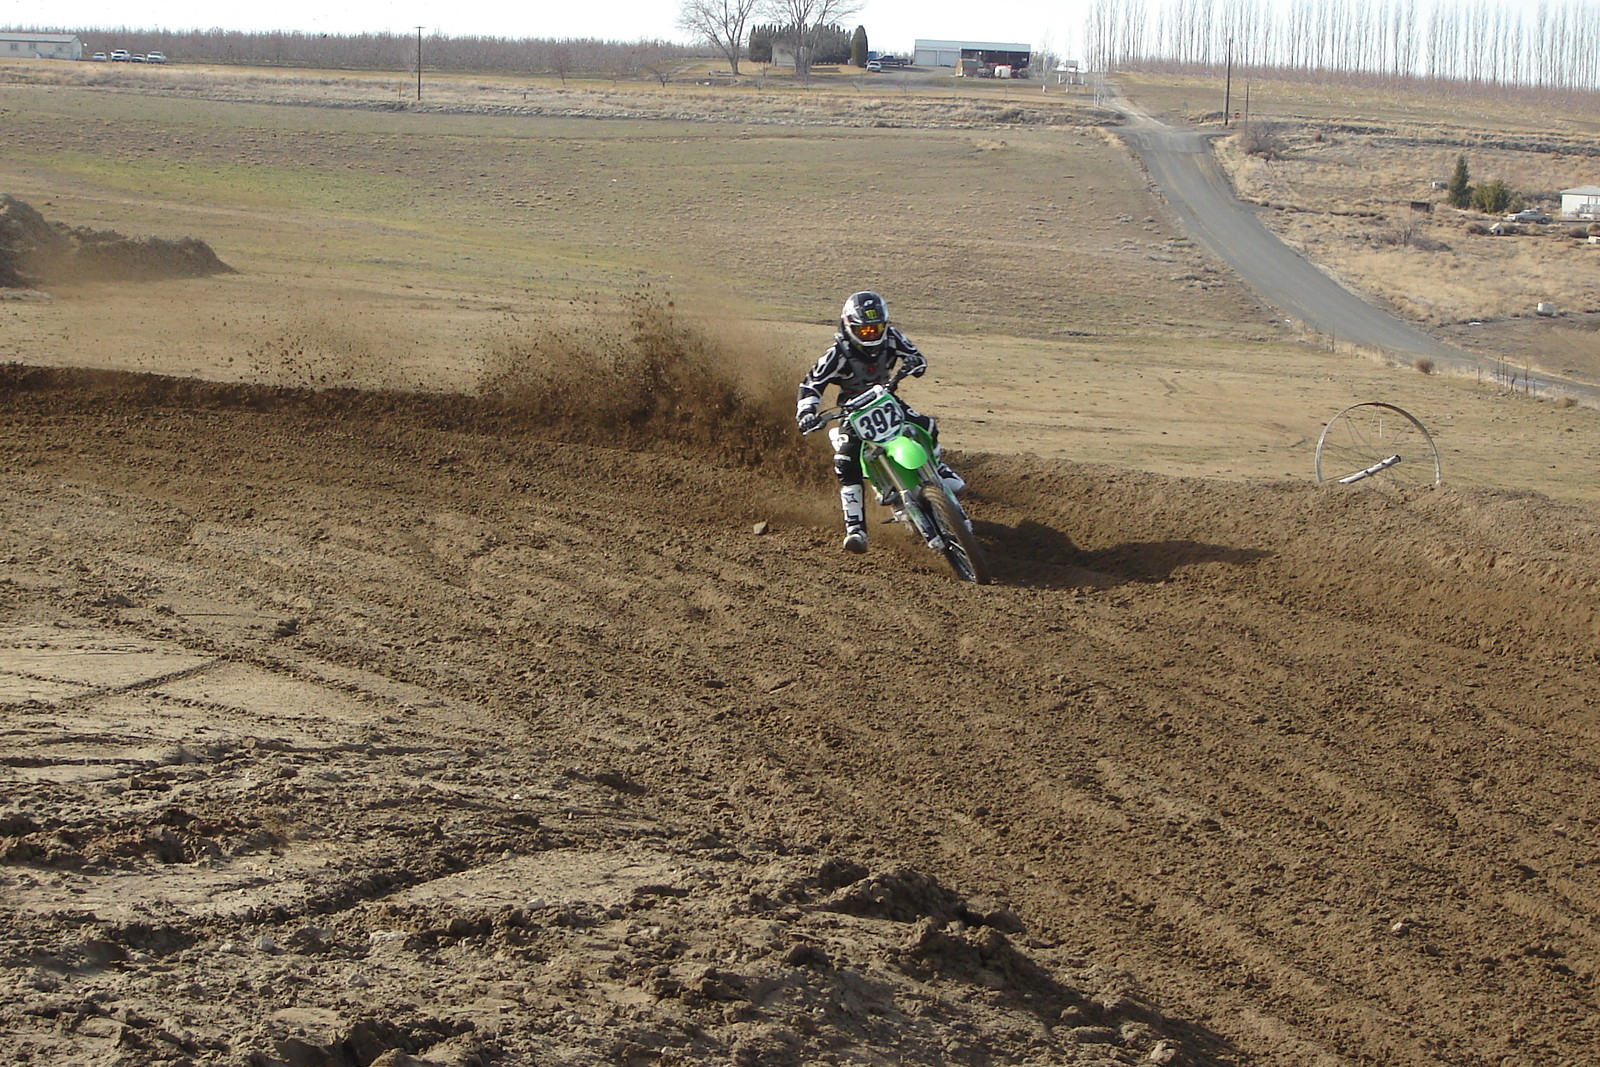 Riding at Toes MXP - mxaaron - Motocross Pictures - Vital MX